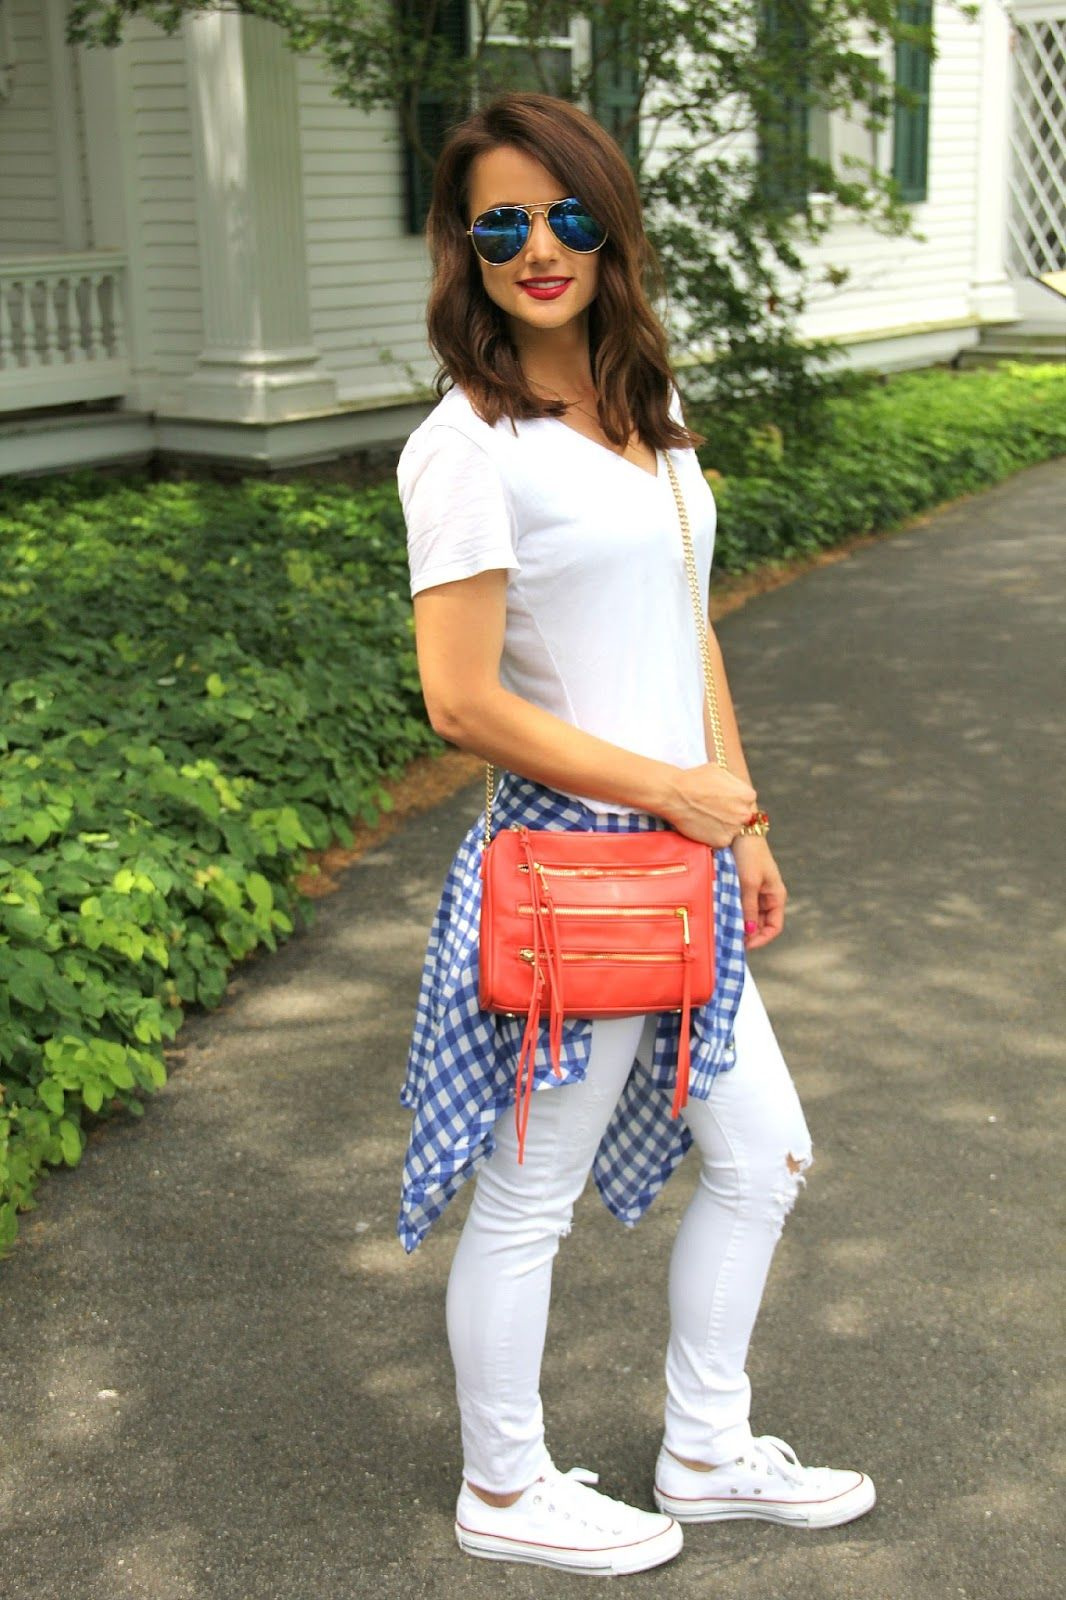 Awe Inspiring Kiss Me Darling Red White And Blue 4Th Of July Outfit Short Hairstyles Gunalazisus